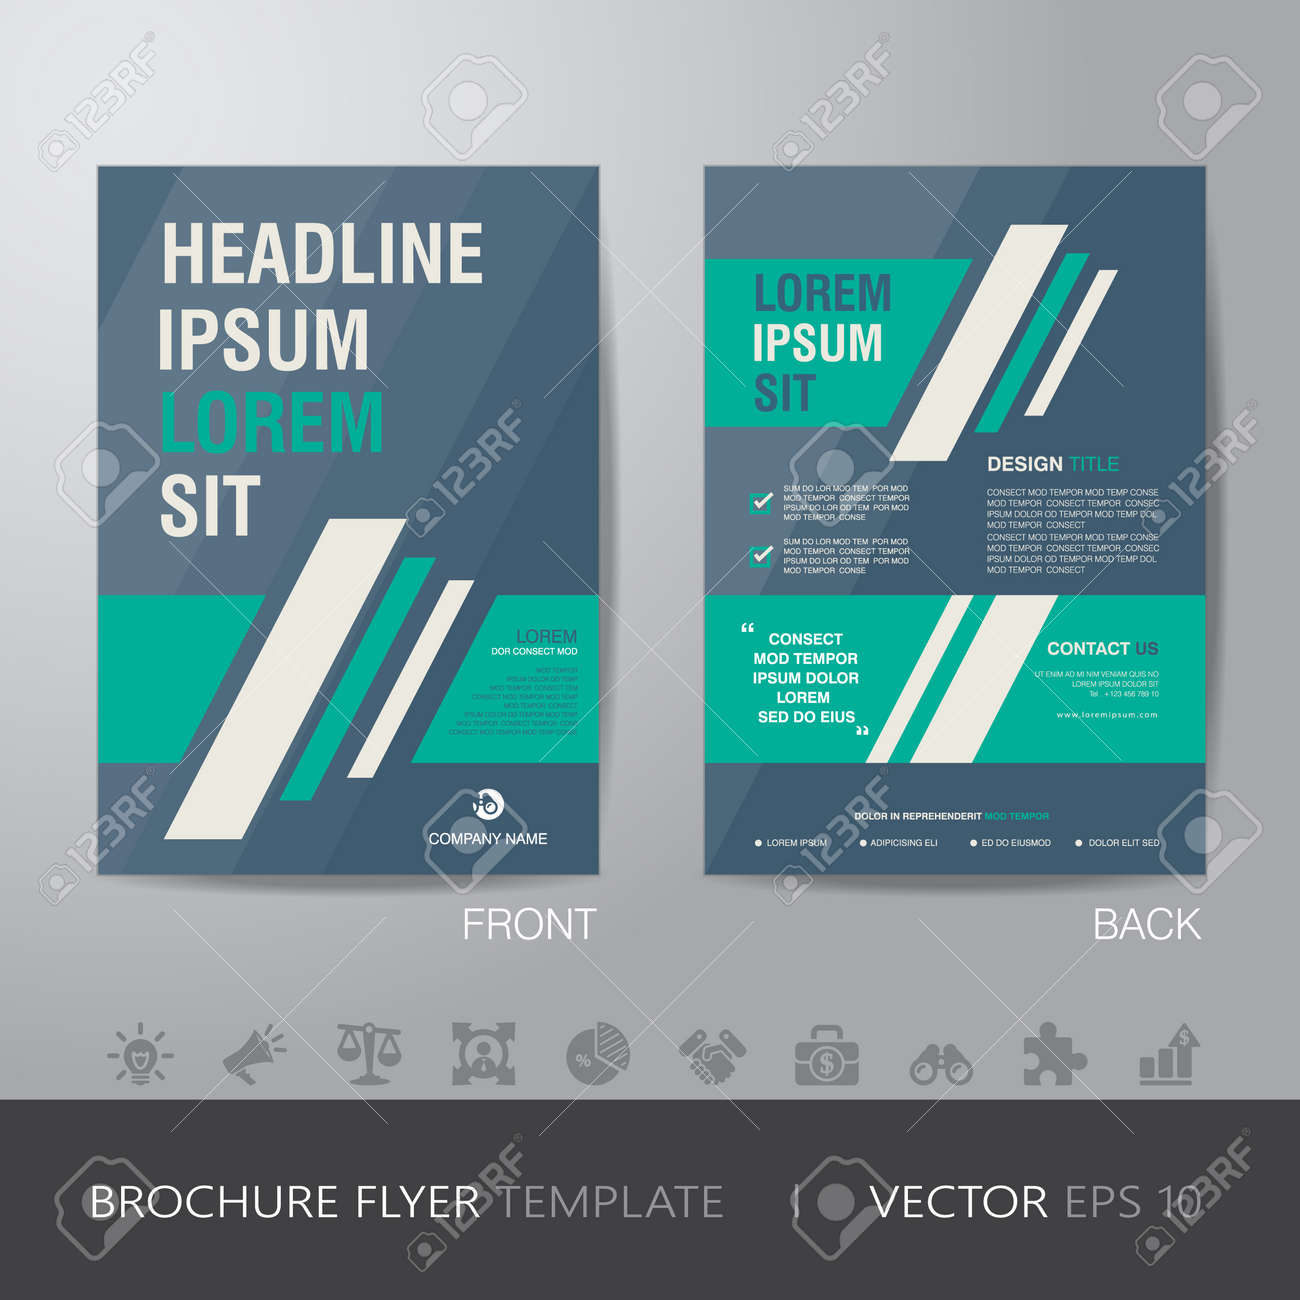 simple business green and blue brochure flyer design layout template in a4 size with bleed